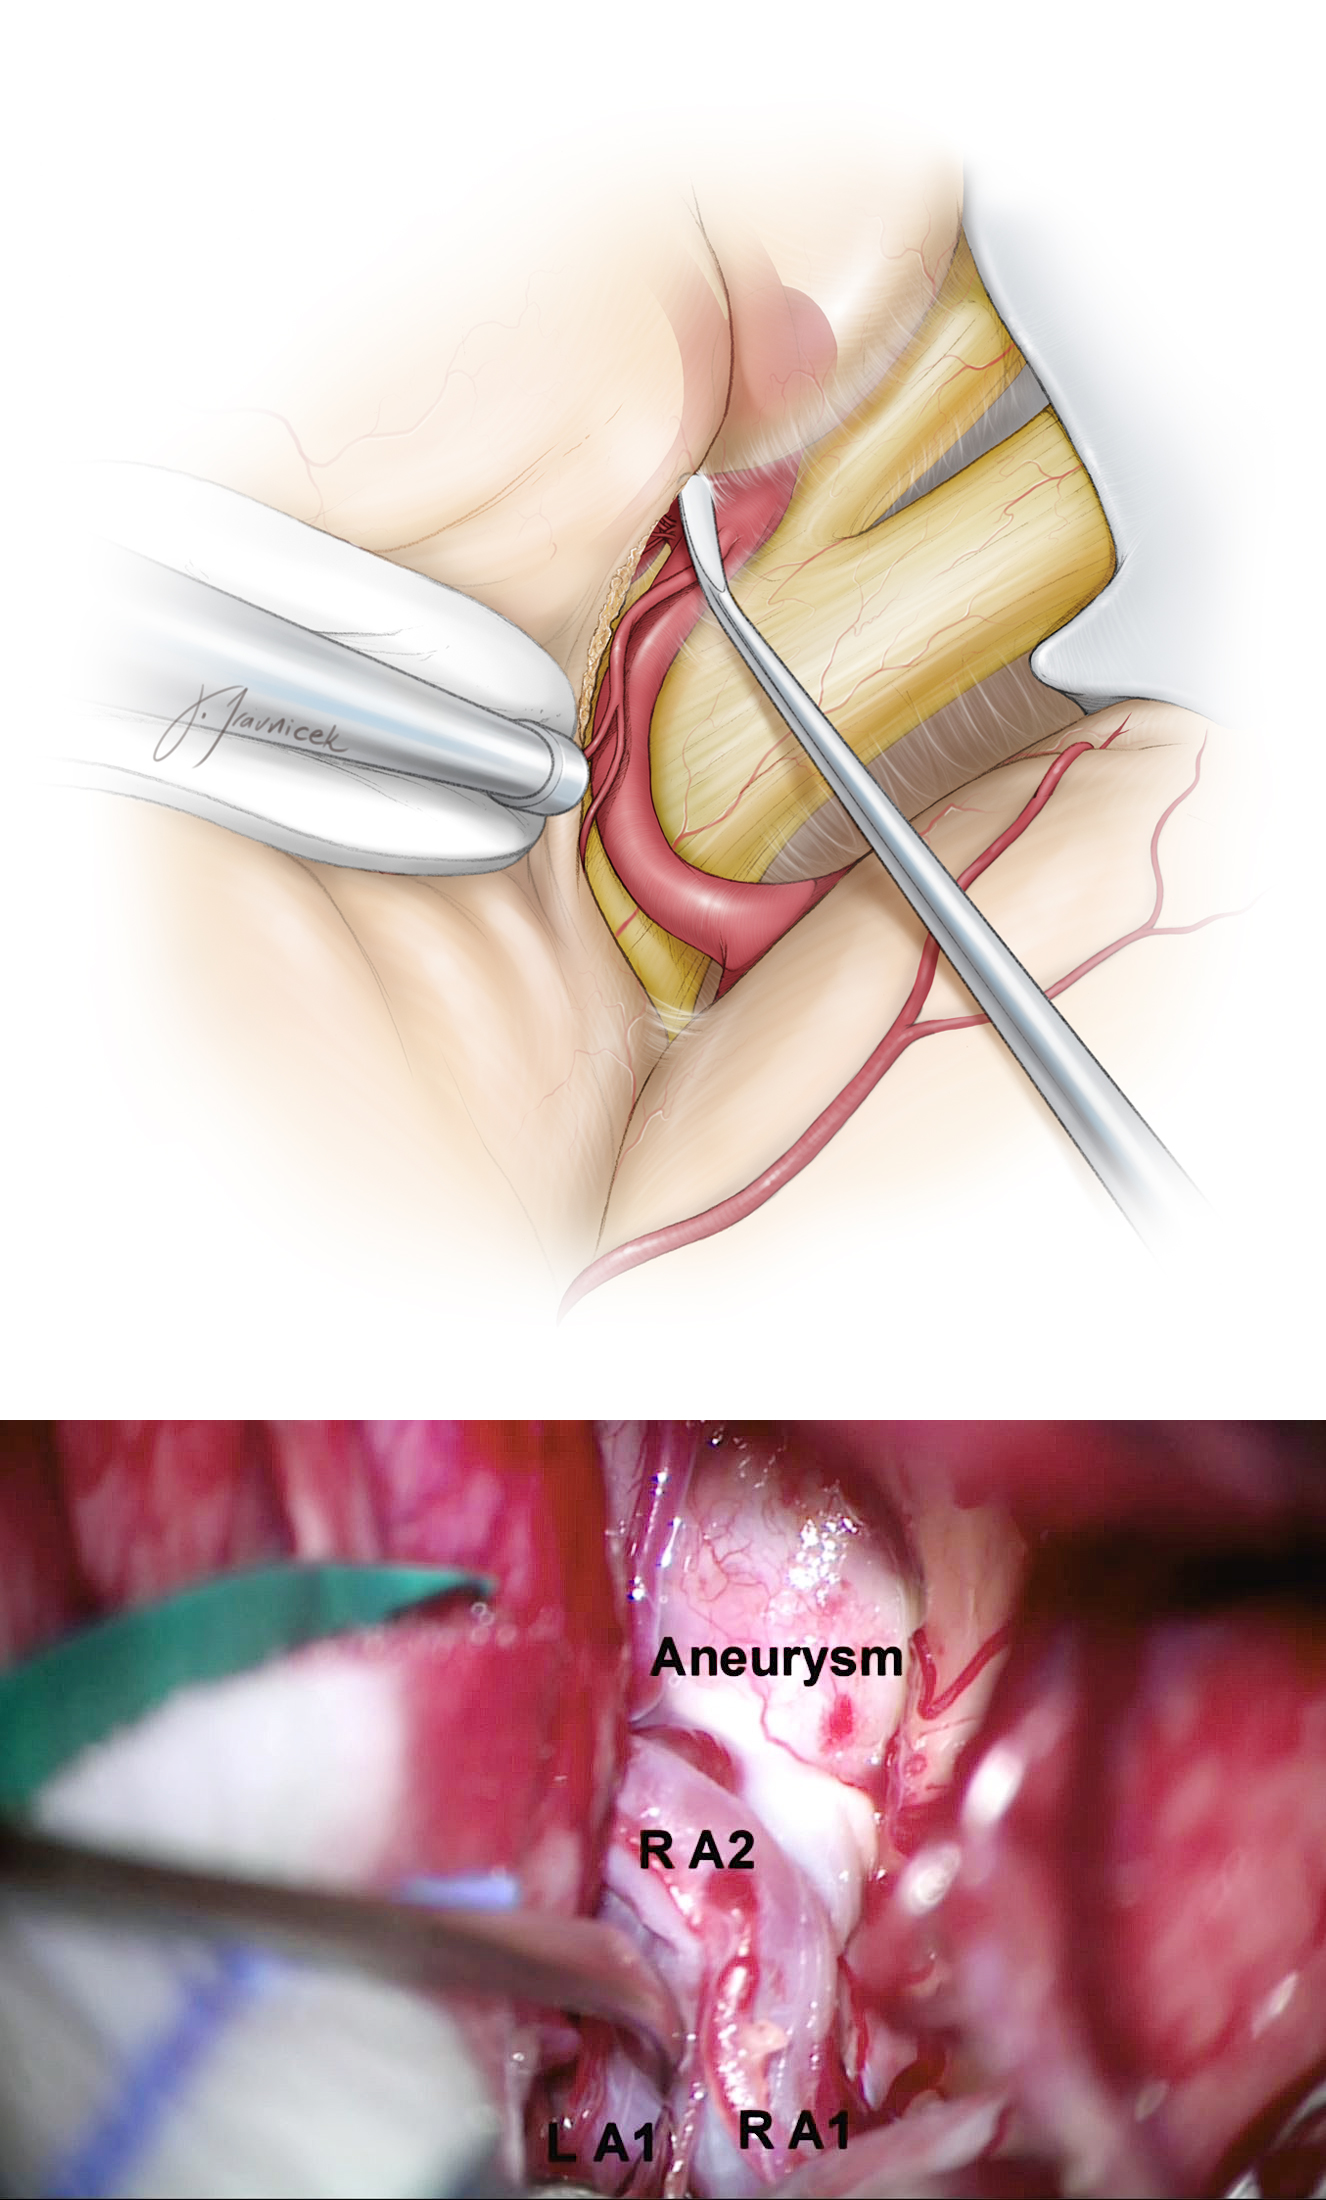 Figure 9: The ACoA complex needs to be dissected on its ventral aspect. The projection of the aneurysm dome affects the particular steps of dissection. In this illustration, the contralateral A1 is prepared for temporary clipping, and clipped only if necessary. The lower intraoperative photo demonstrates careful inspection of the relevant vessels.